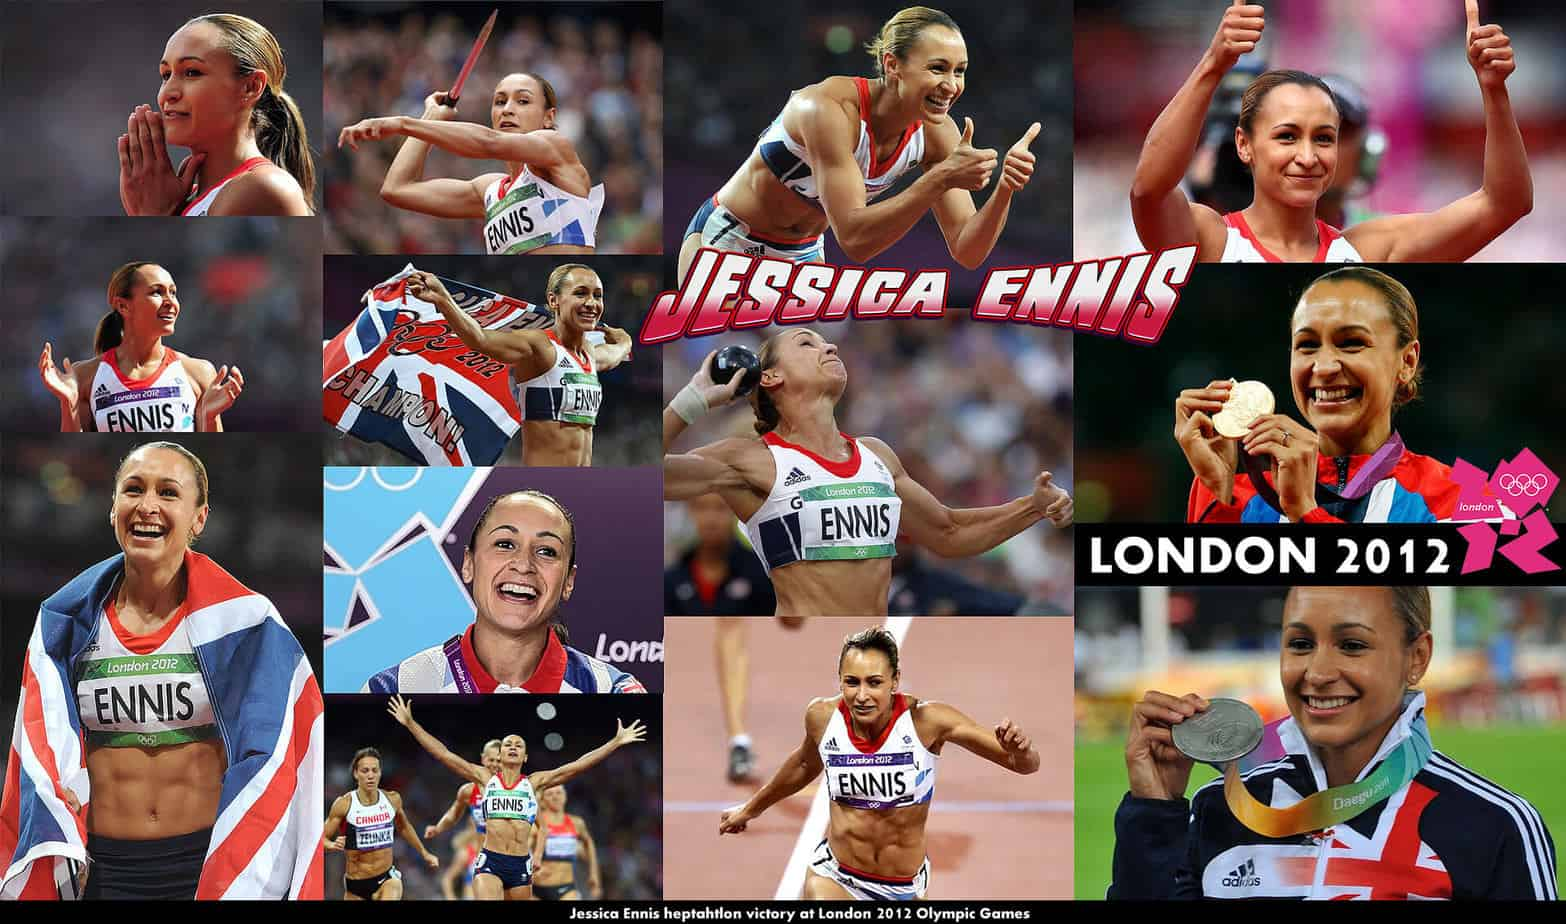 Jessica Ennis Wallpaper 2012